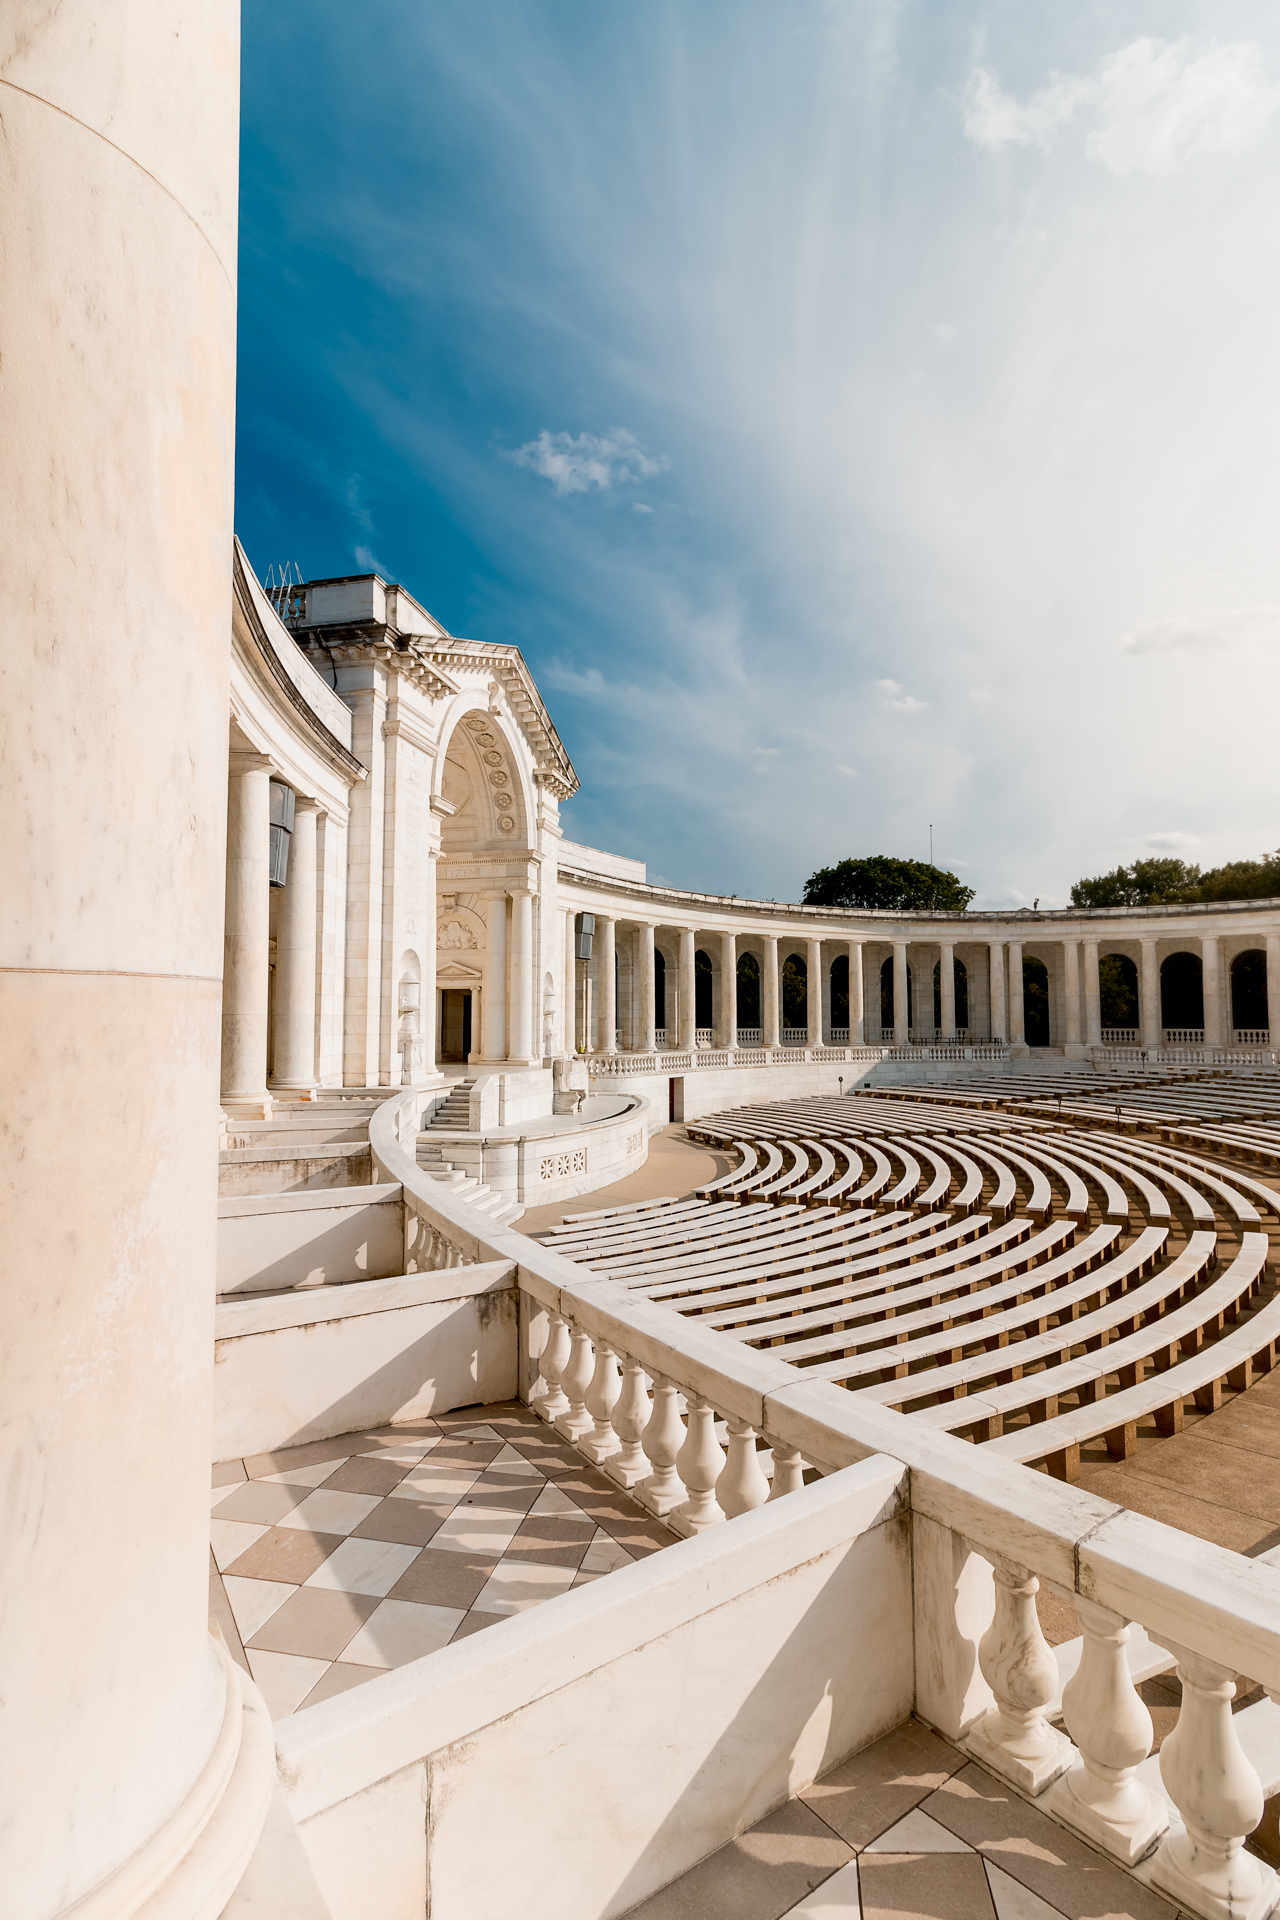 Memorial Amphitheater – Arlington cemetery's amphitheater basking in the sunlight{&nbsp;}(Image: Zack Lewkowicz)<p></p>